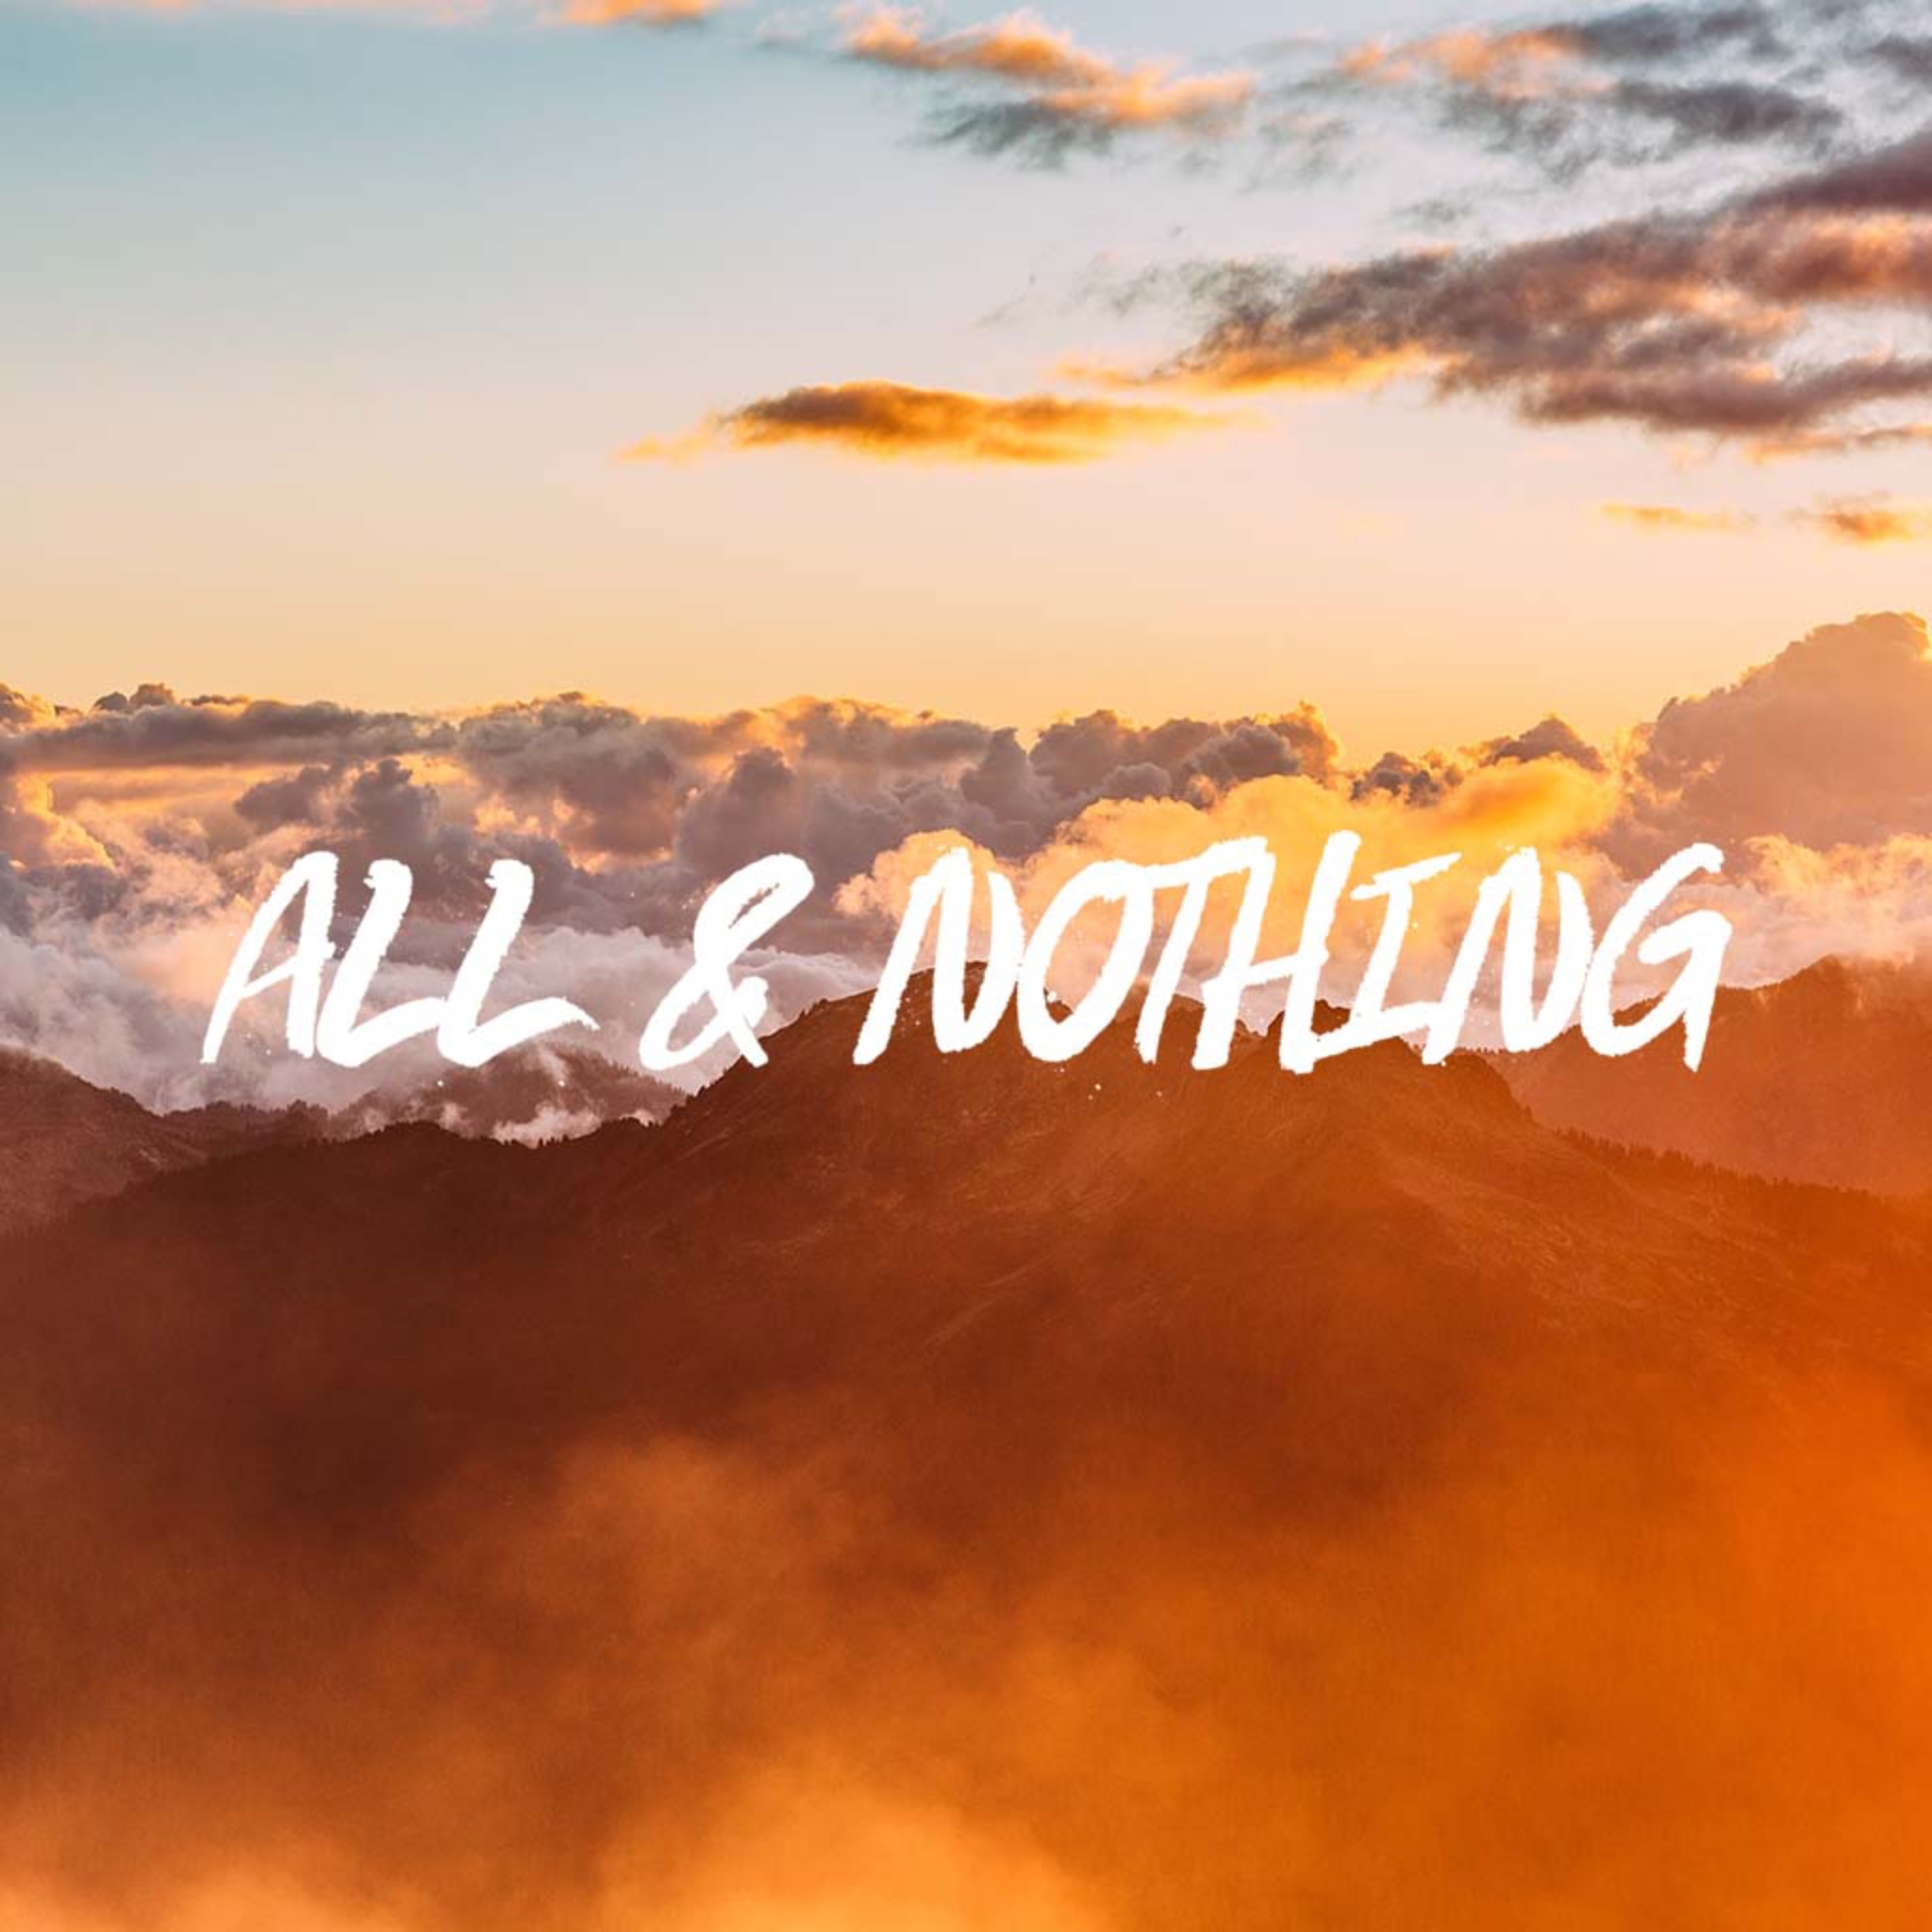 All & Nothing (Balboa) - Ps. Stacy Capaldi